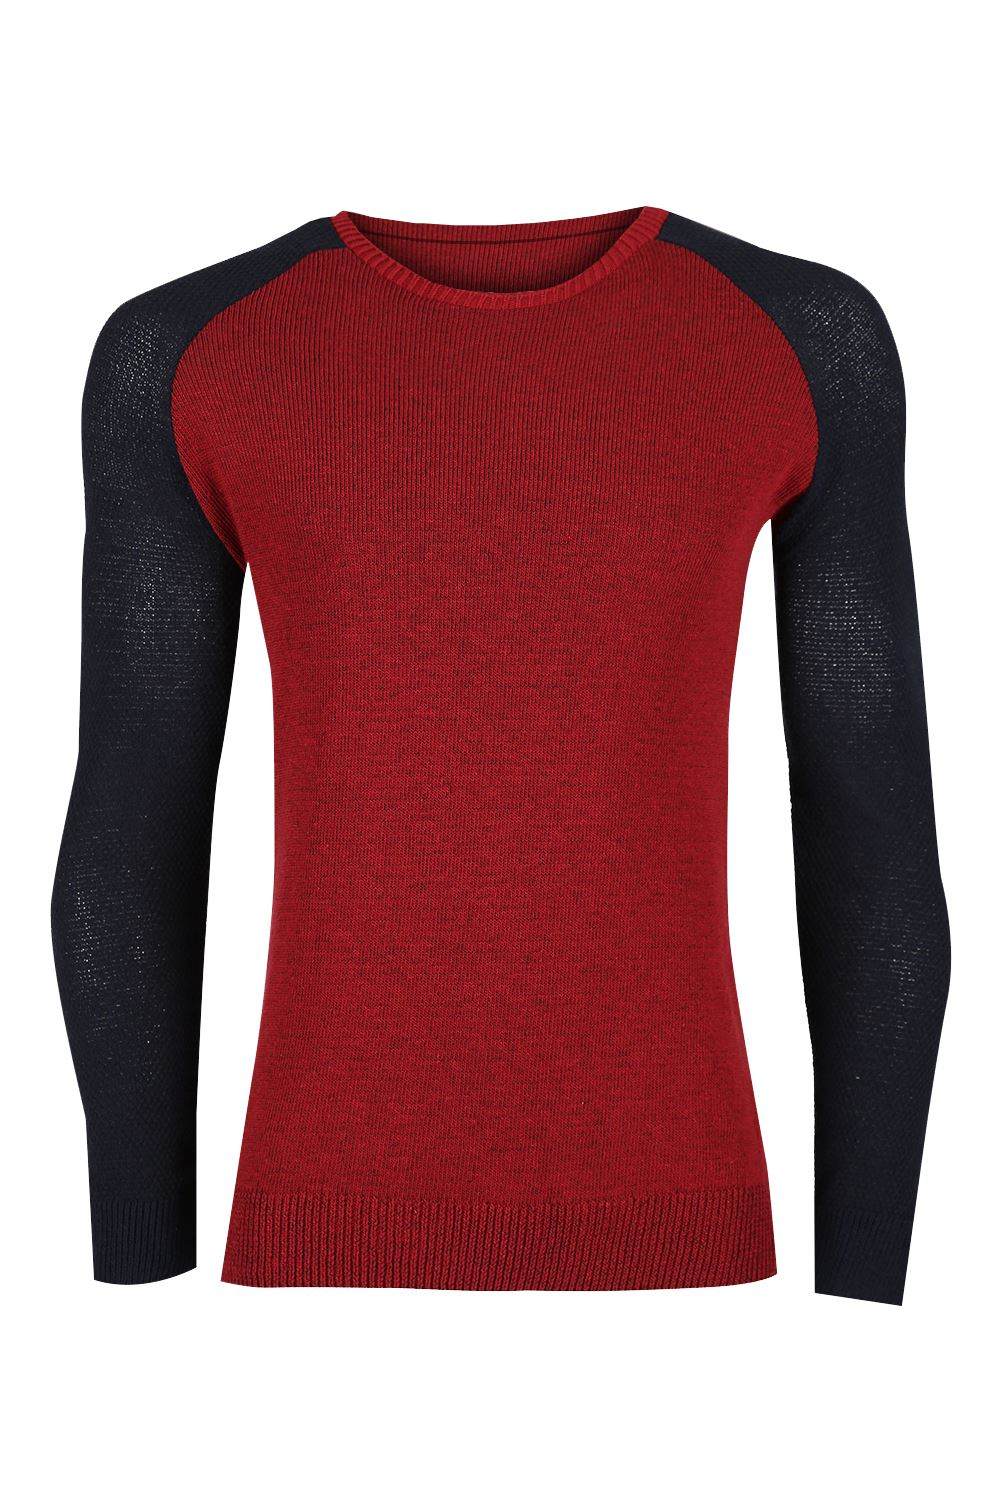 Mens-Raglan-Contrast-Long-Sleeve-Ribbed-Cuff-Crew-Neck-Knitted-Pullover-Jumper